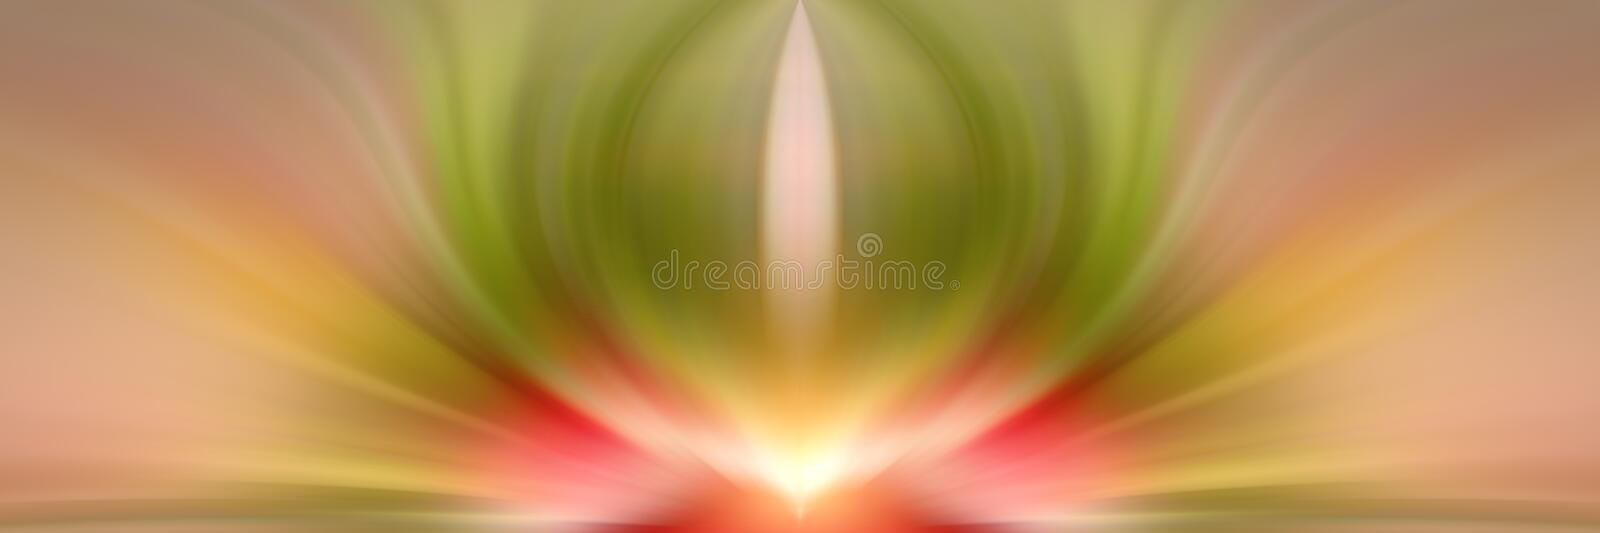 Abstract energy flower. Red and green background. Abstract energy flower. Red and green background for text. Esoteric - concept royalty free stock photo